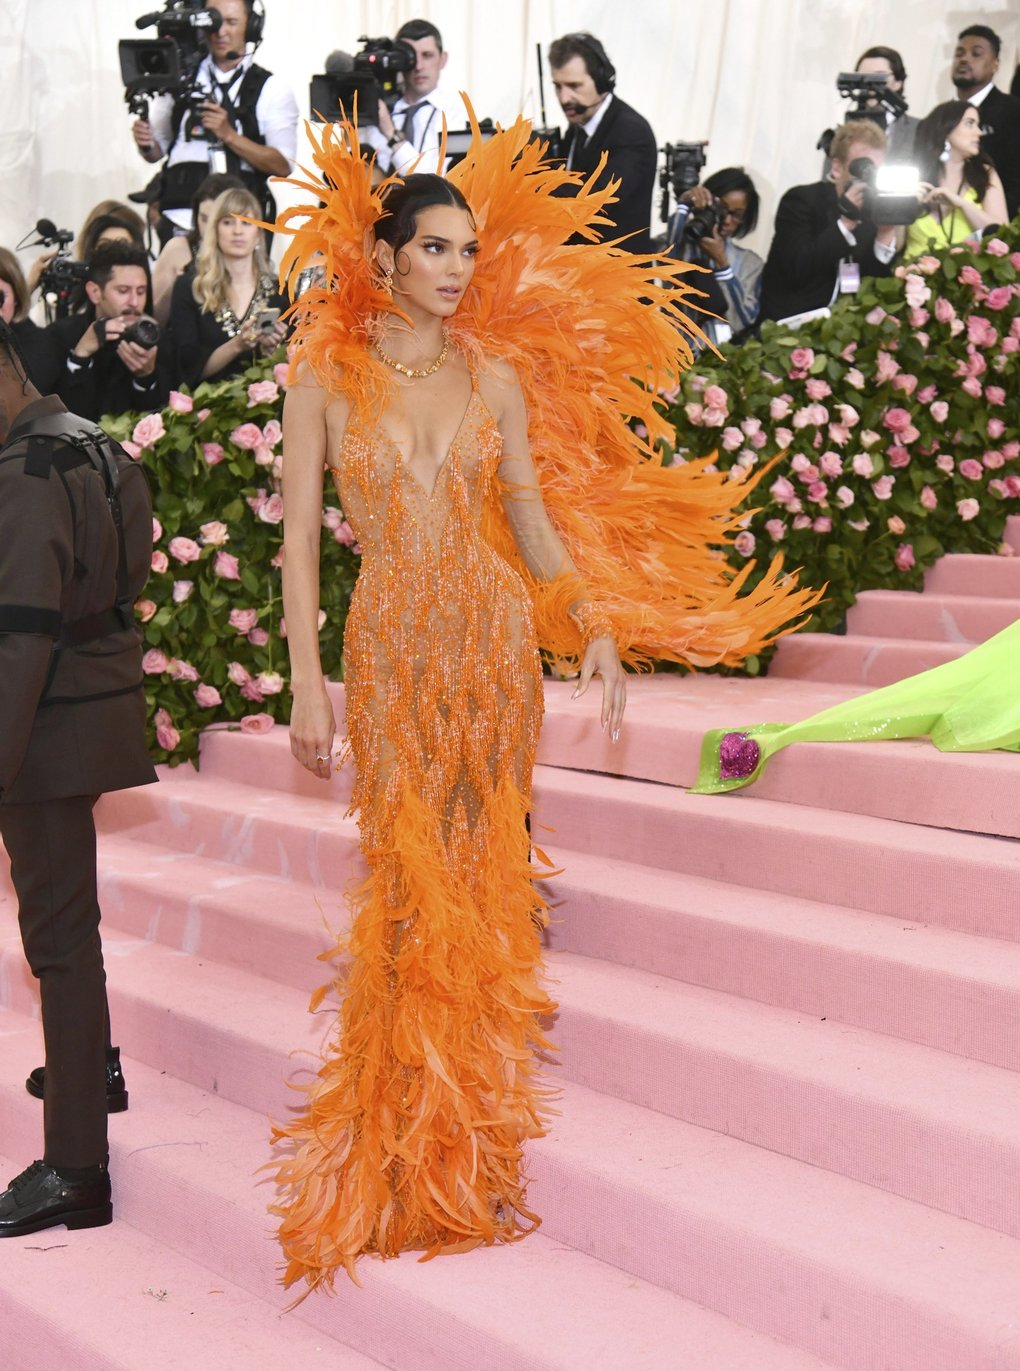 """Kendall Jenner attends The Metropolitan Museum of Art's Costume Institute benefit gala celebrating the opening of the """"Camp: Notes on Fashion"""" exhibition on Monday, May 6, 2019, in New York. (Photo by Charles Sykes/Invision/AP)"""